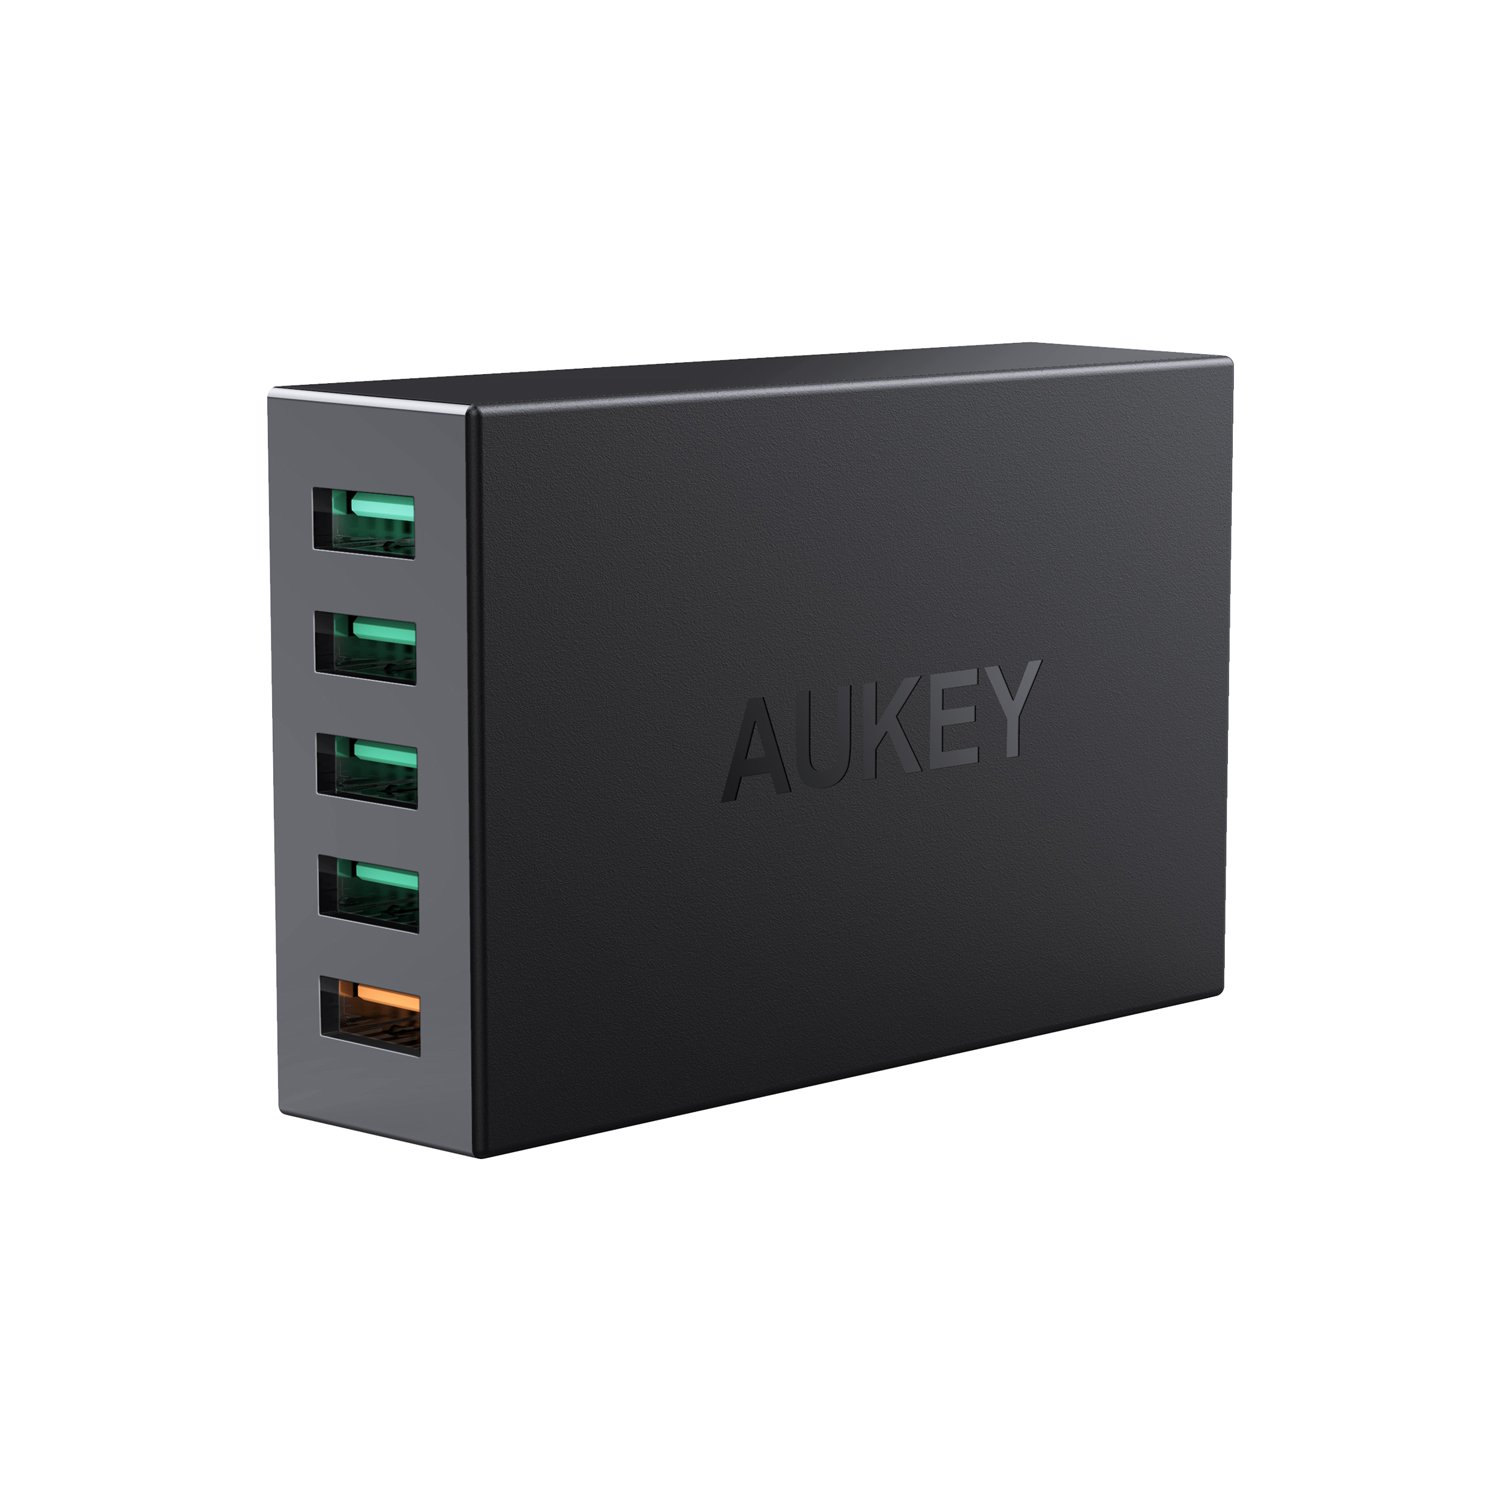 AUKEY Quick Charge 3.0 5-Port USB Charger with 55.5W USB Charging Station